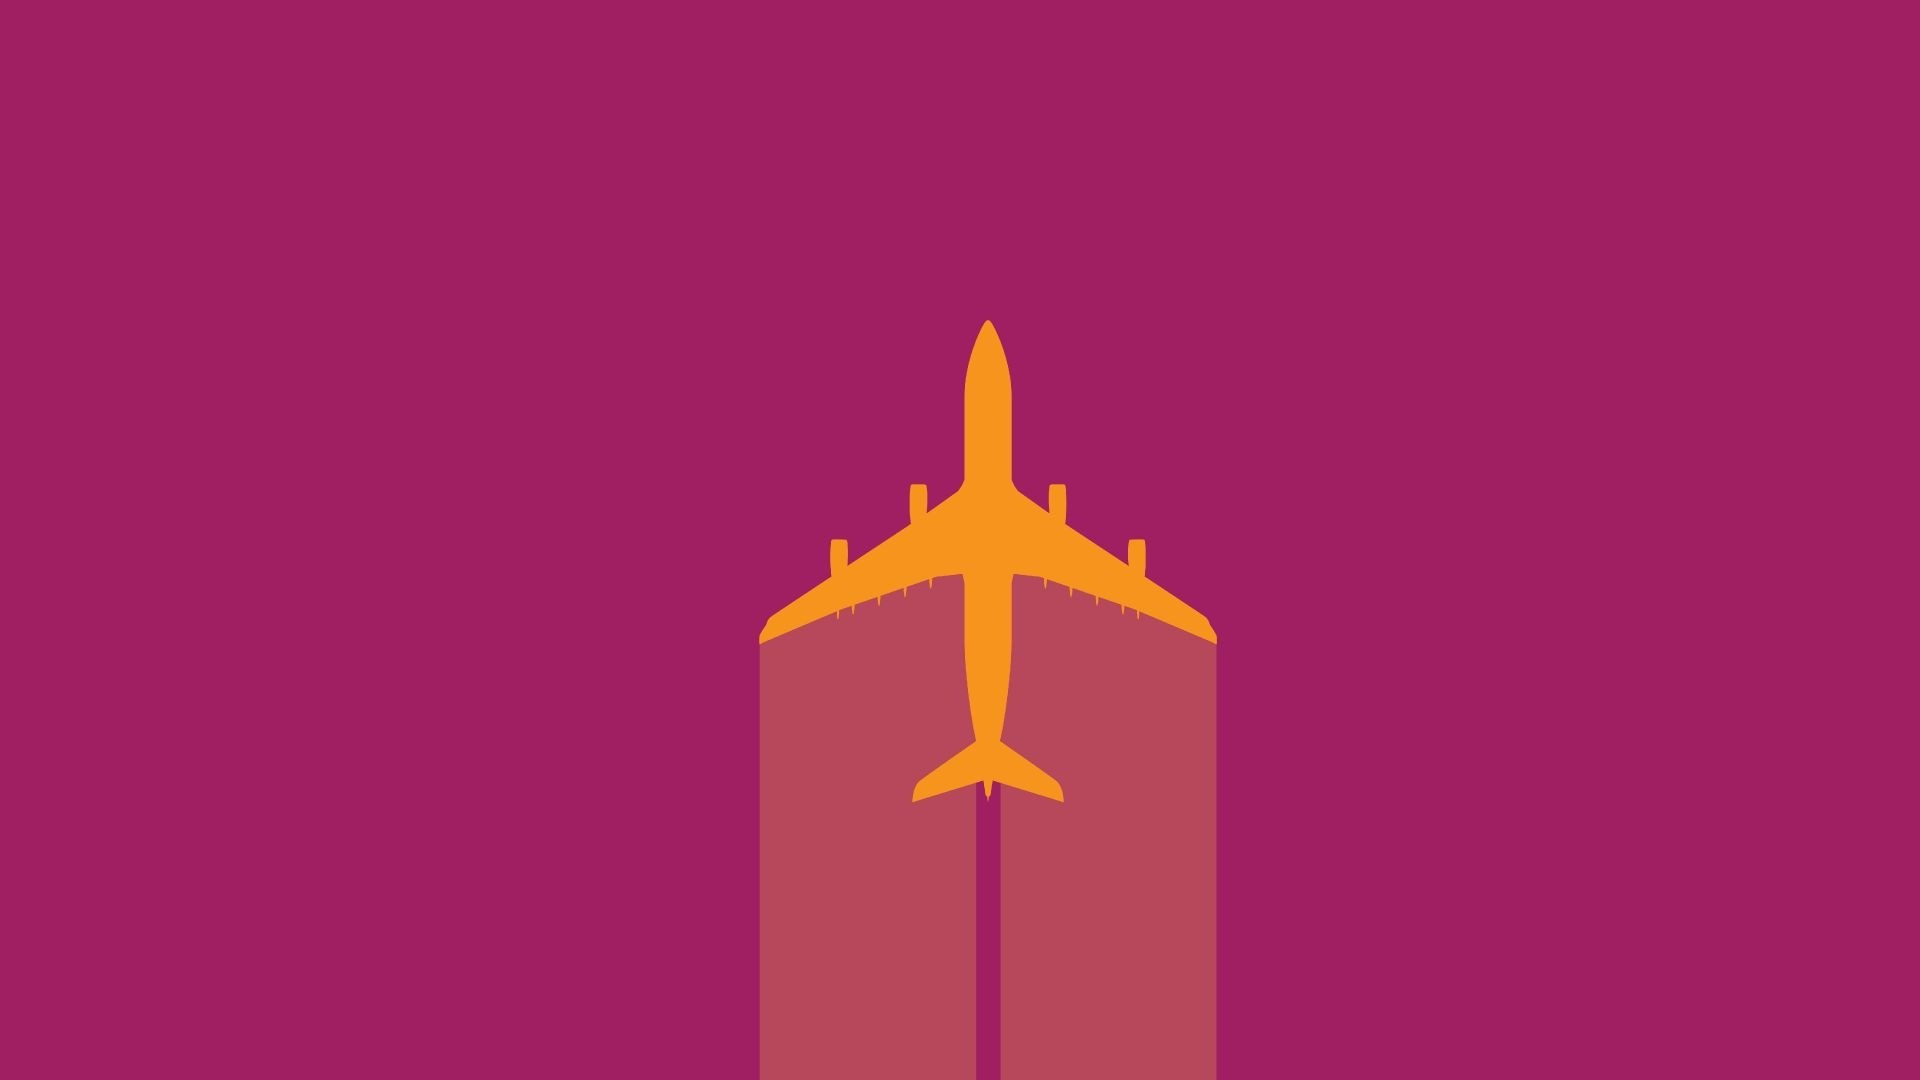 Airplane Minimalist Wallpaper